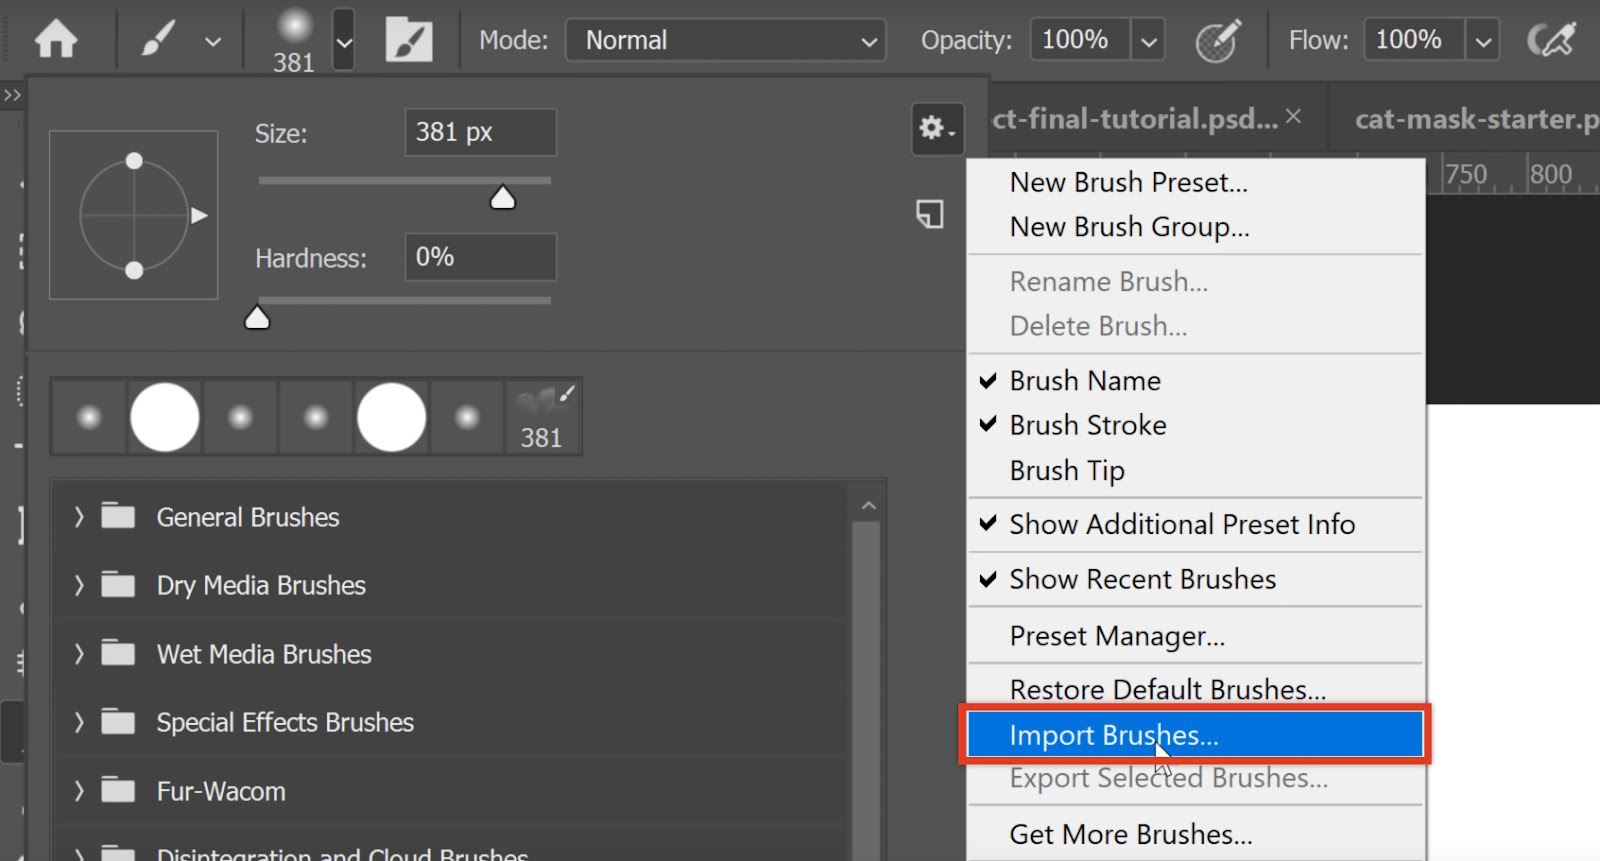 Free High-Quality Photoshop Brushes